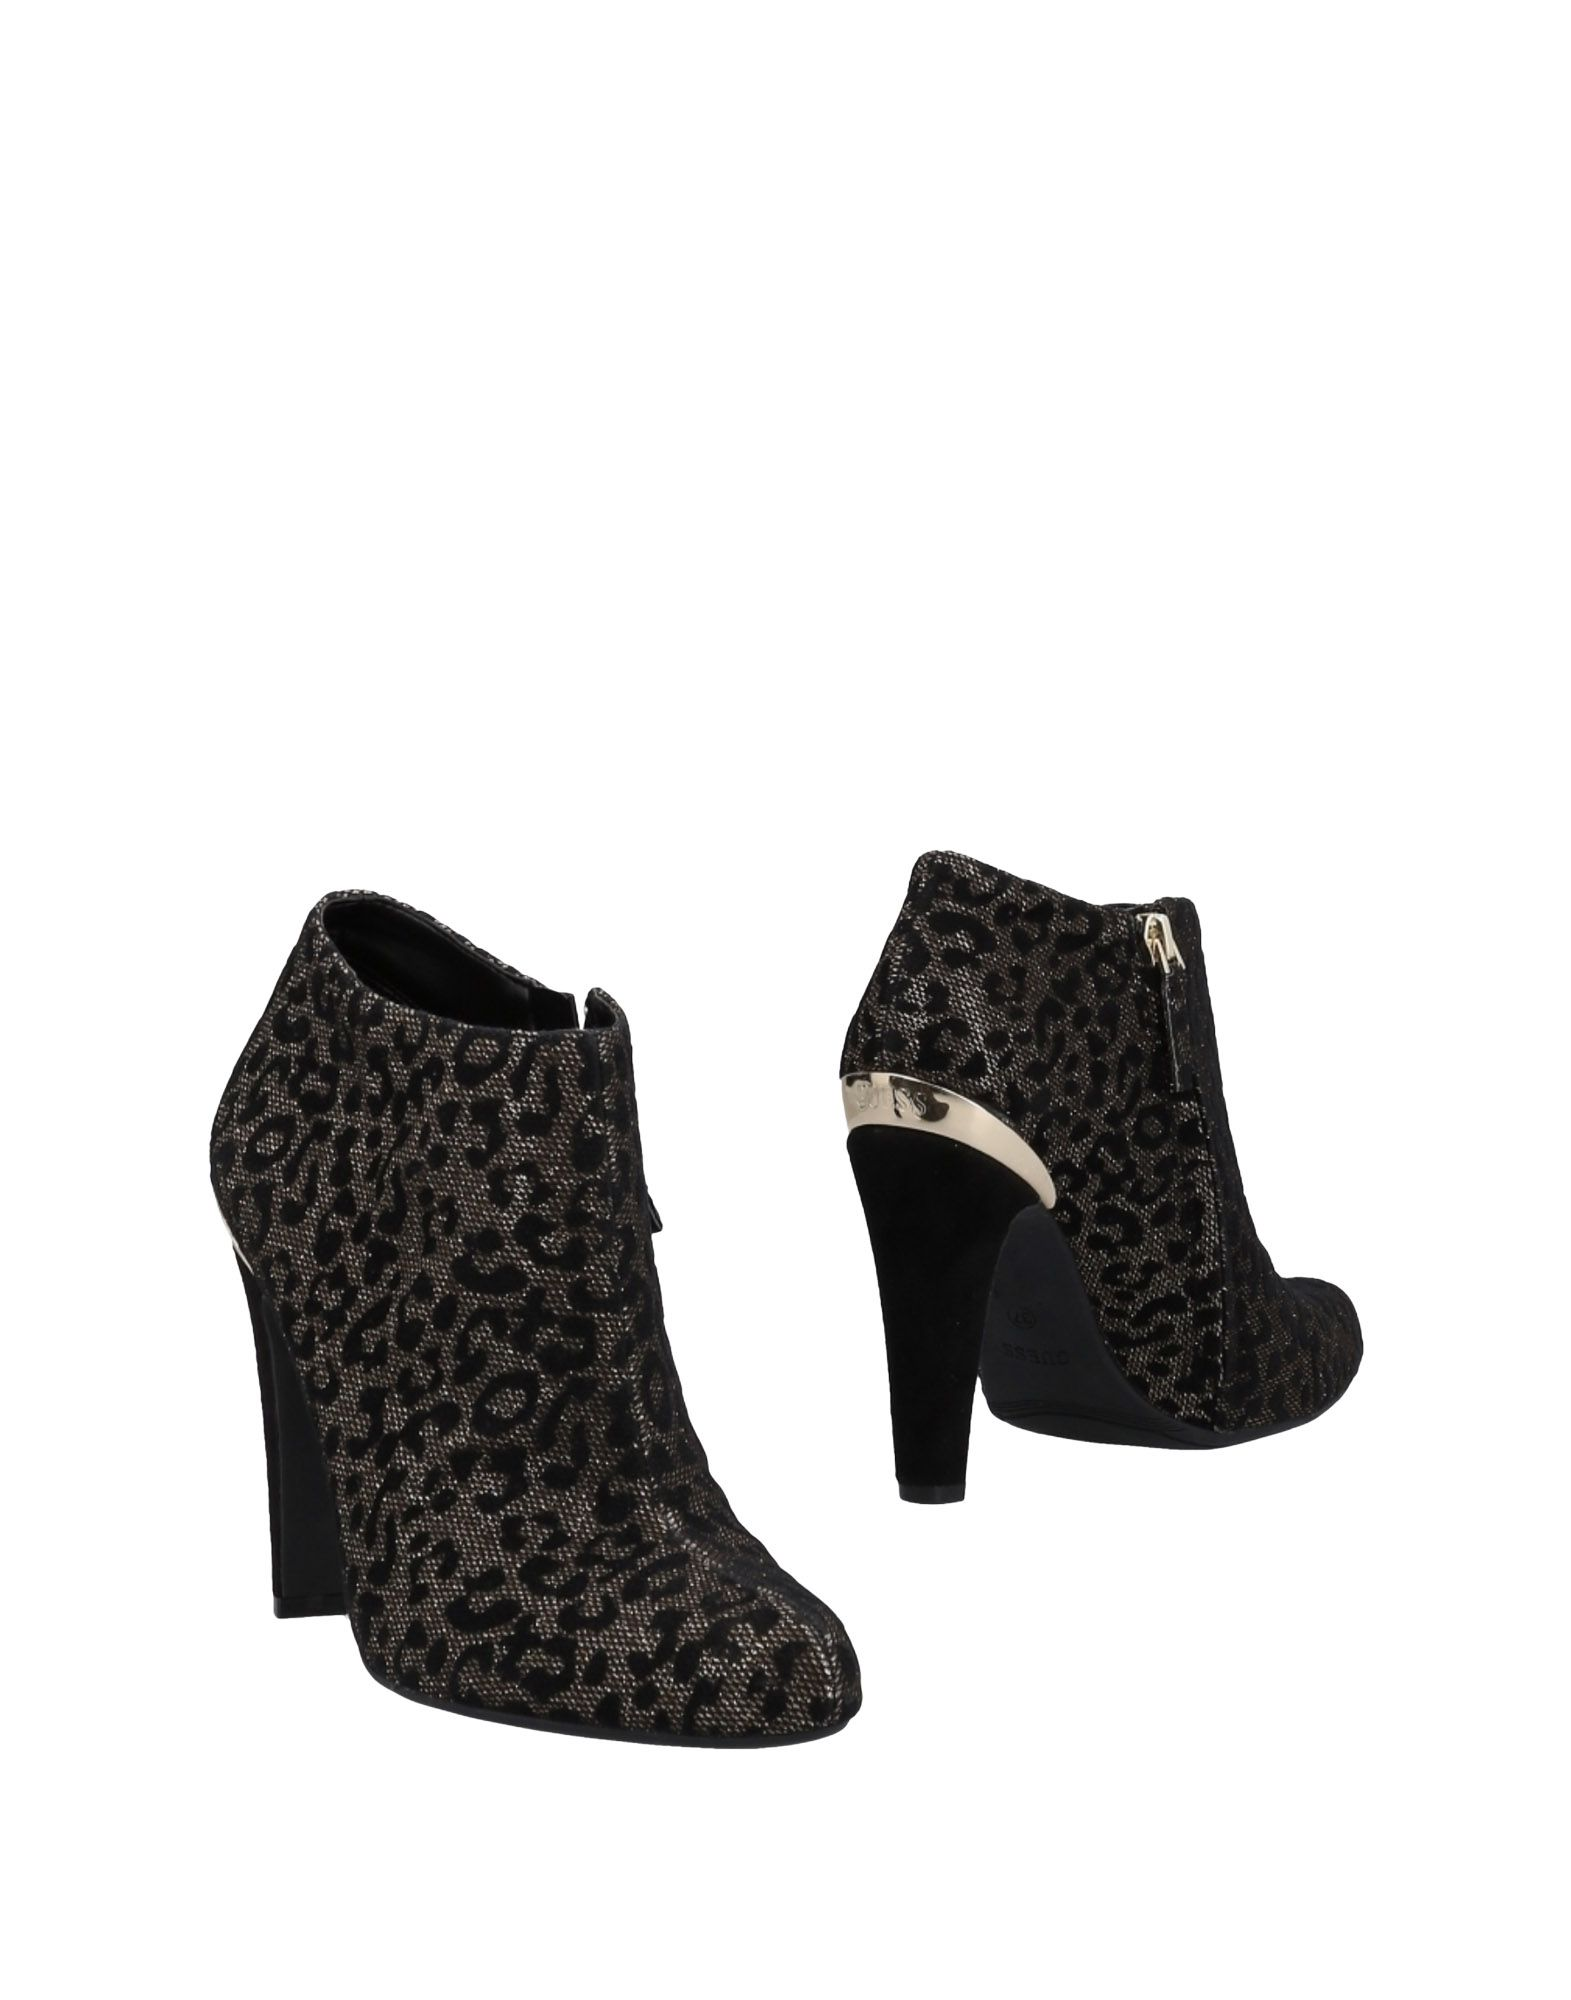 Guess on Ankle Boot - Women Guess Ankle Boots online on Guess  Australia - 11486299WI 3a50f4